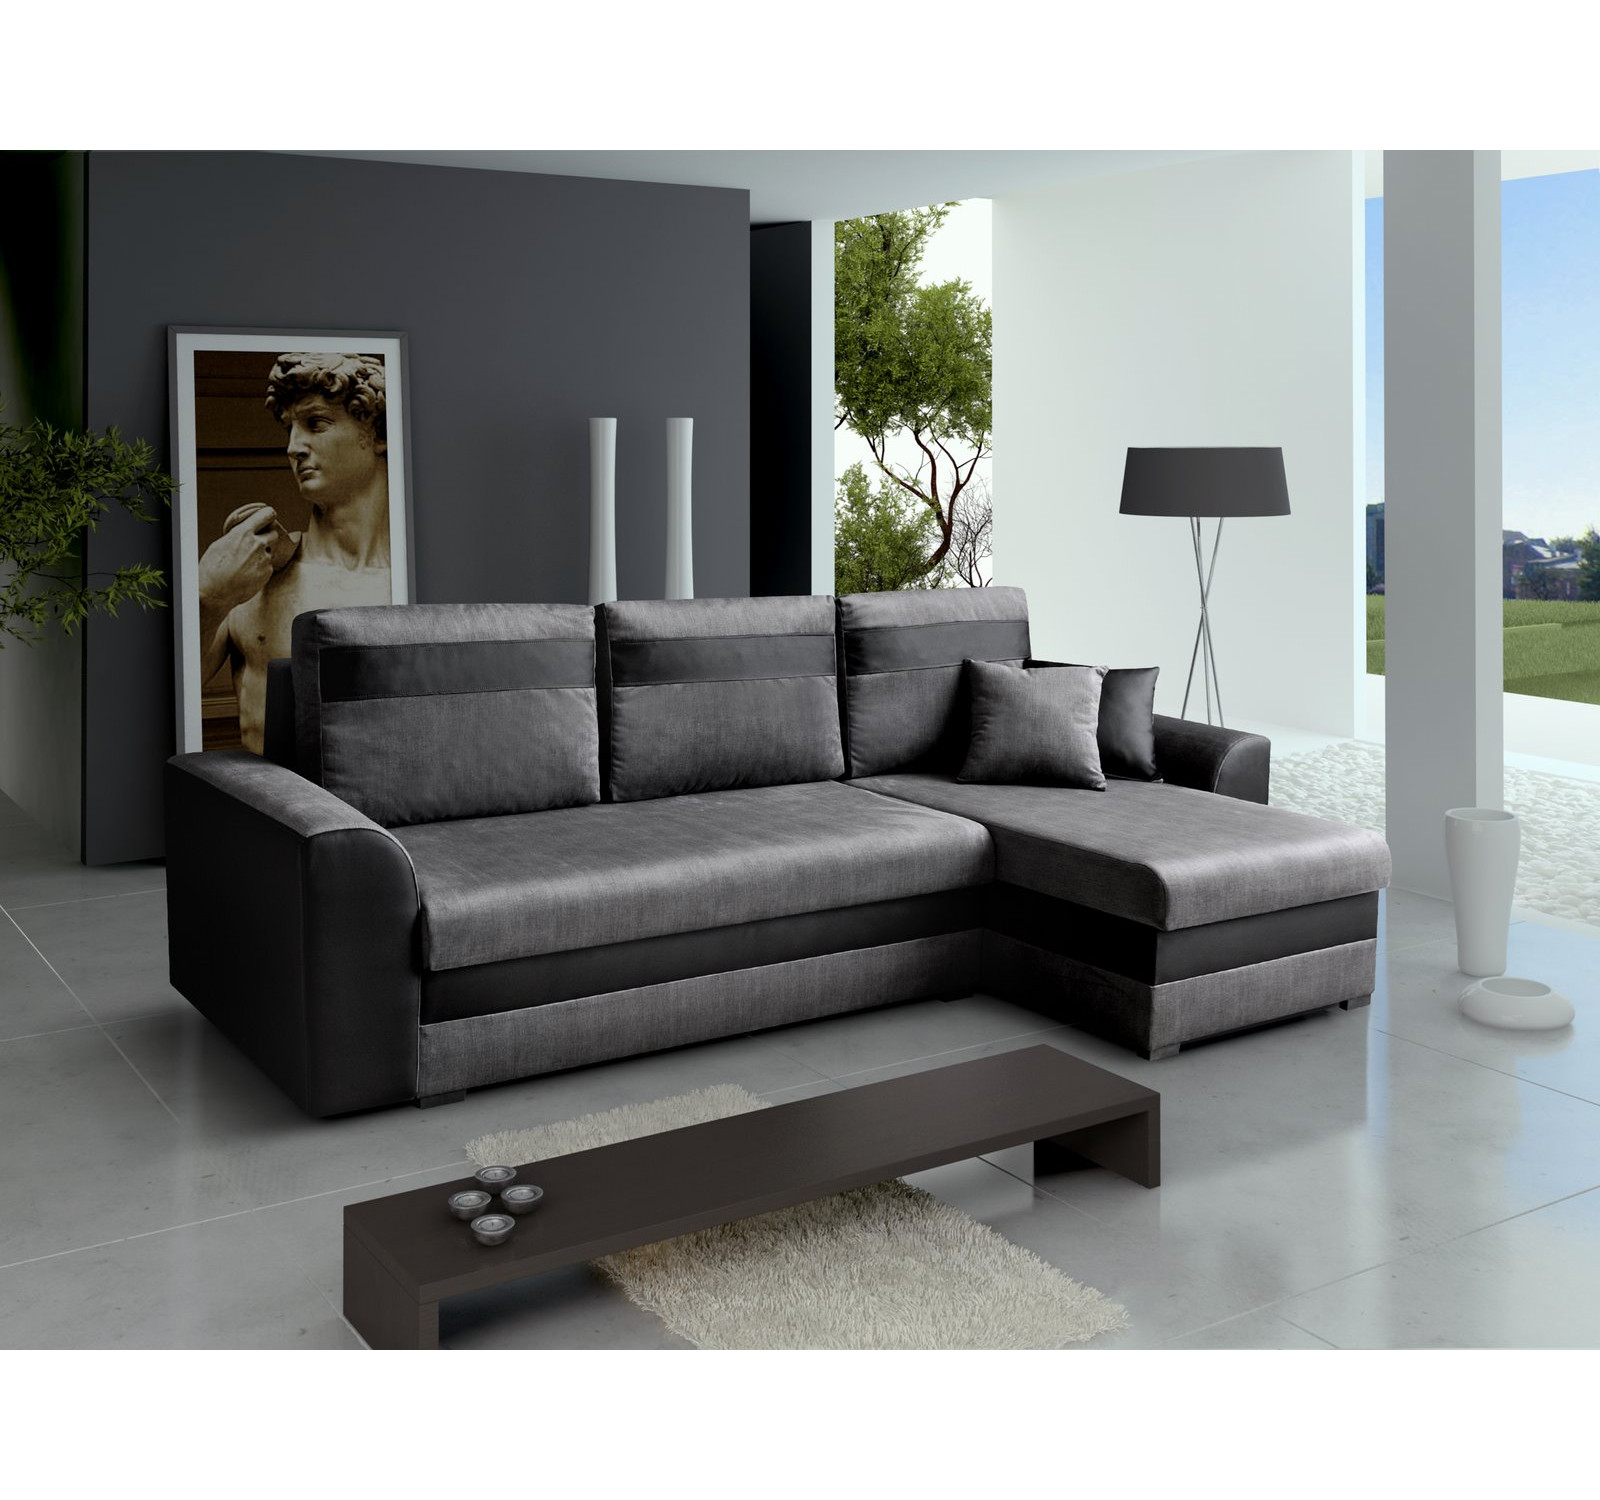 ecksofa tommy grau m bel muller braun. Black Bedroom Furniture Sets. Home Design Ideas